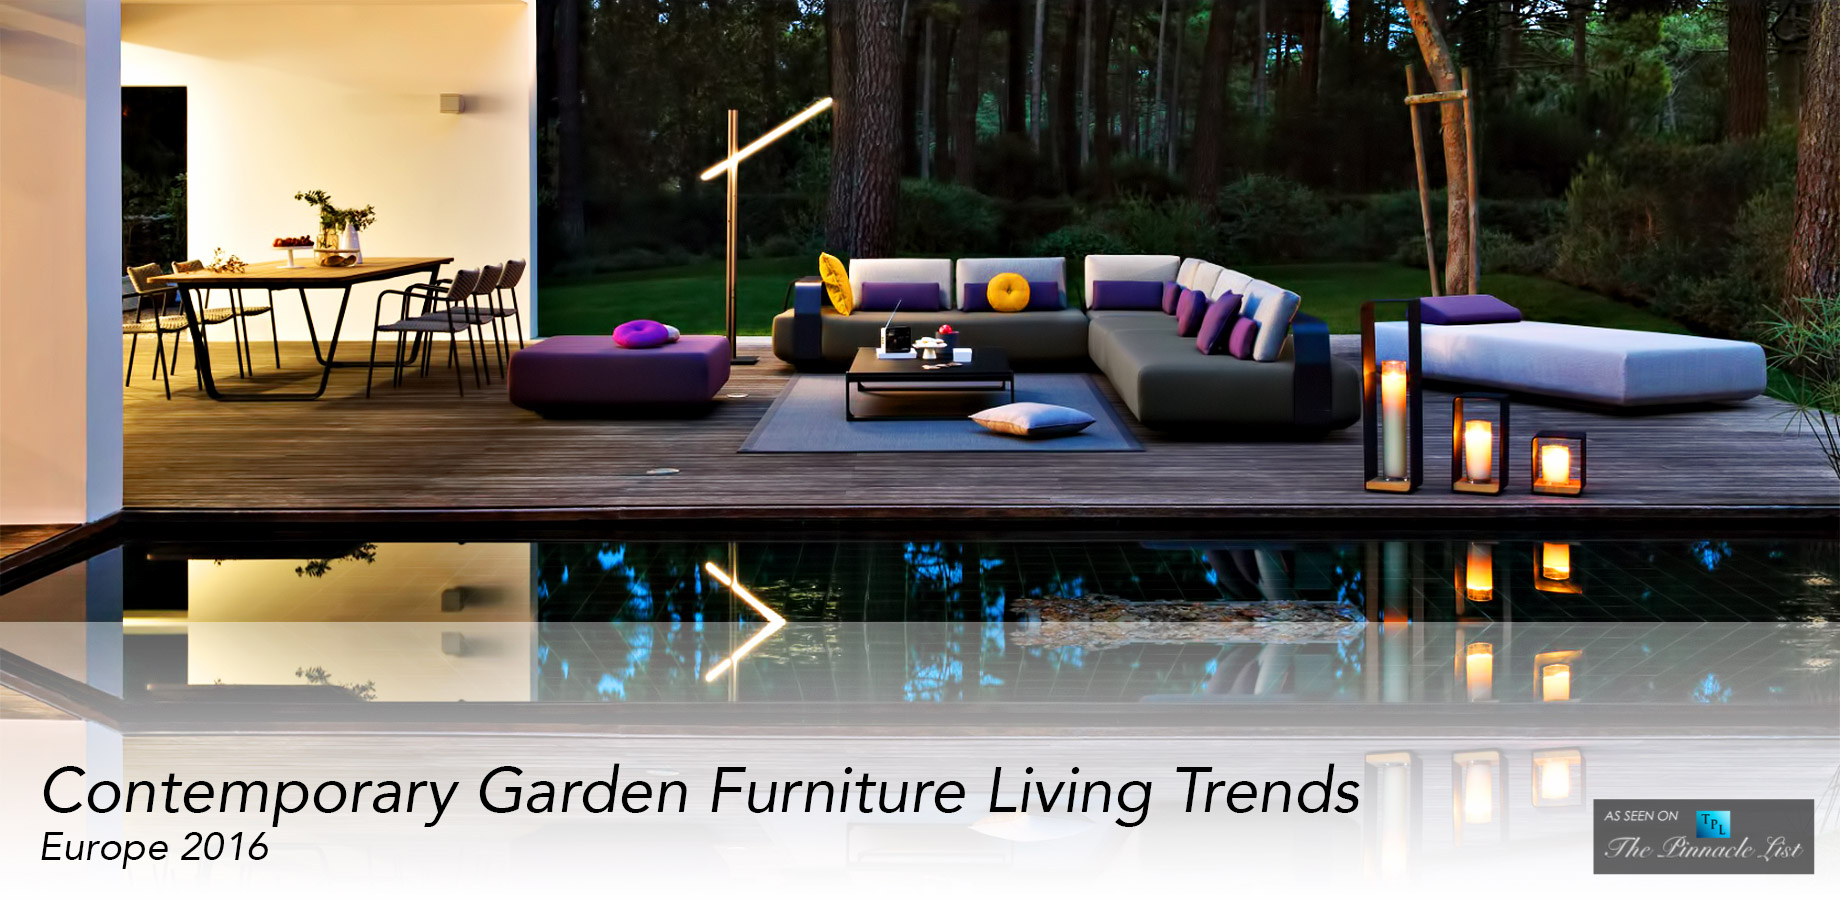 Garden Furniture Trends contemporary garden furniture living trends from europe for 2016 TRGXWFV